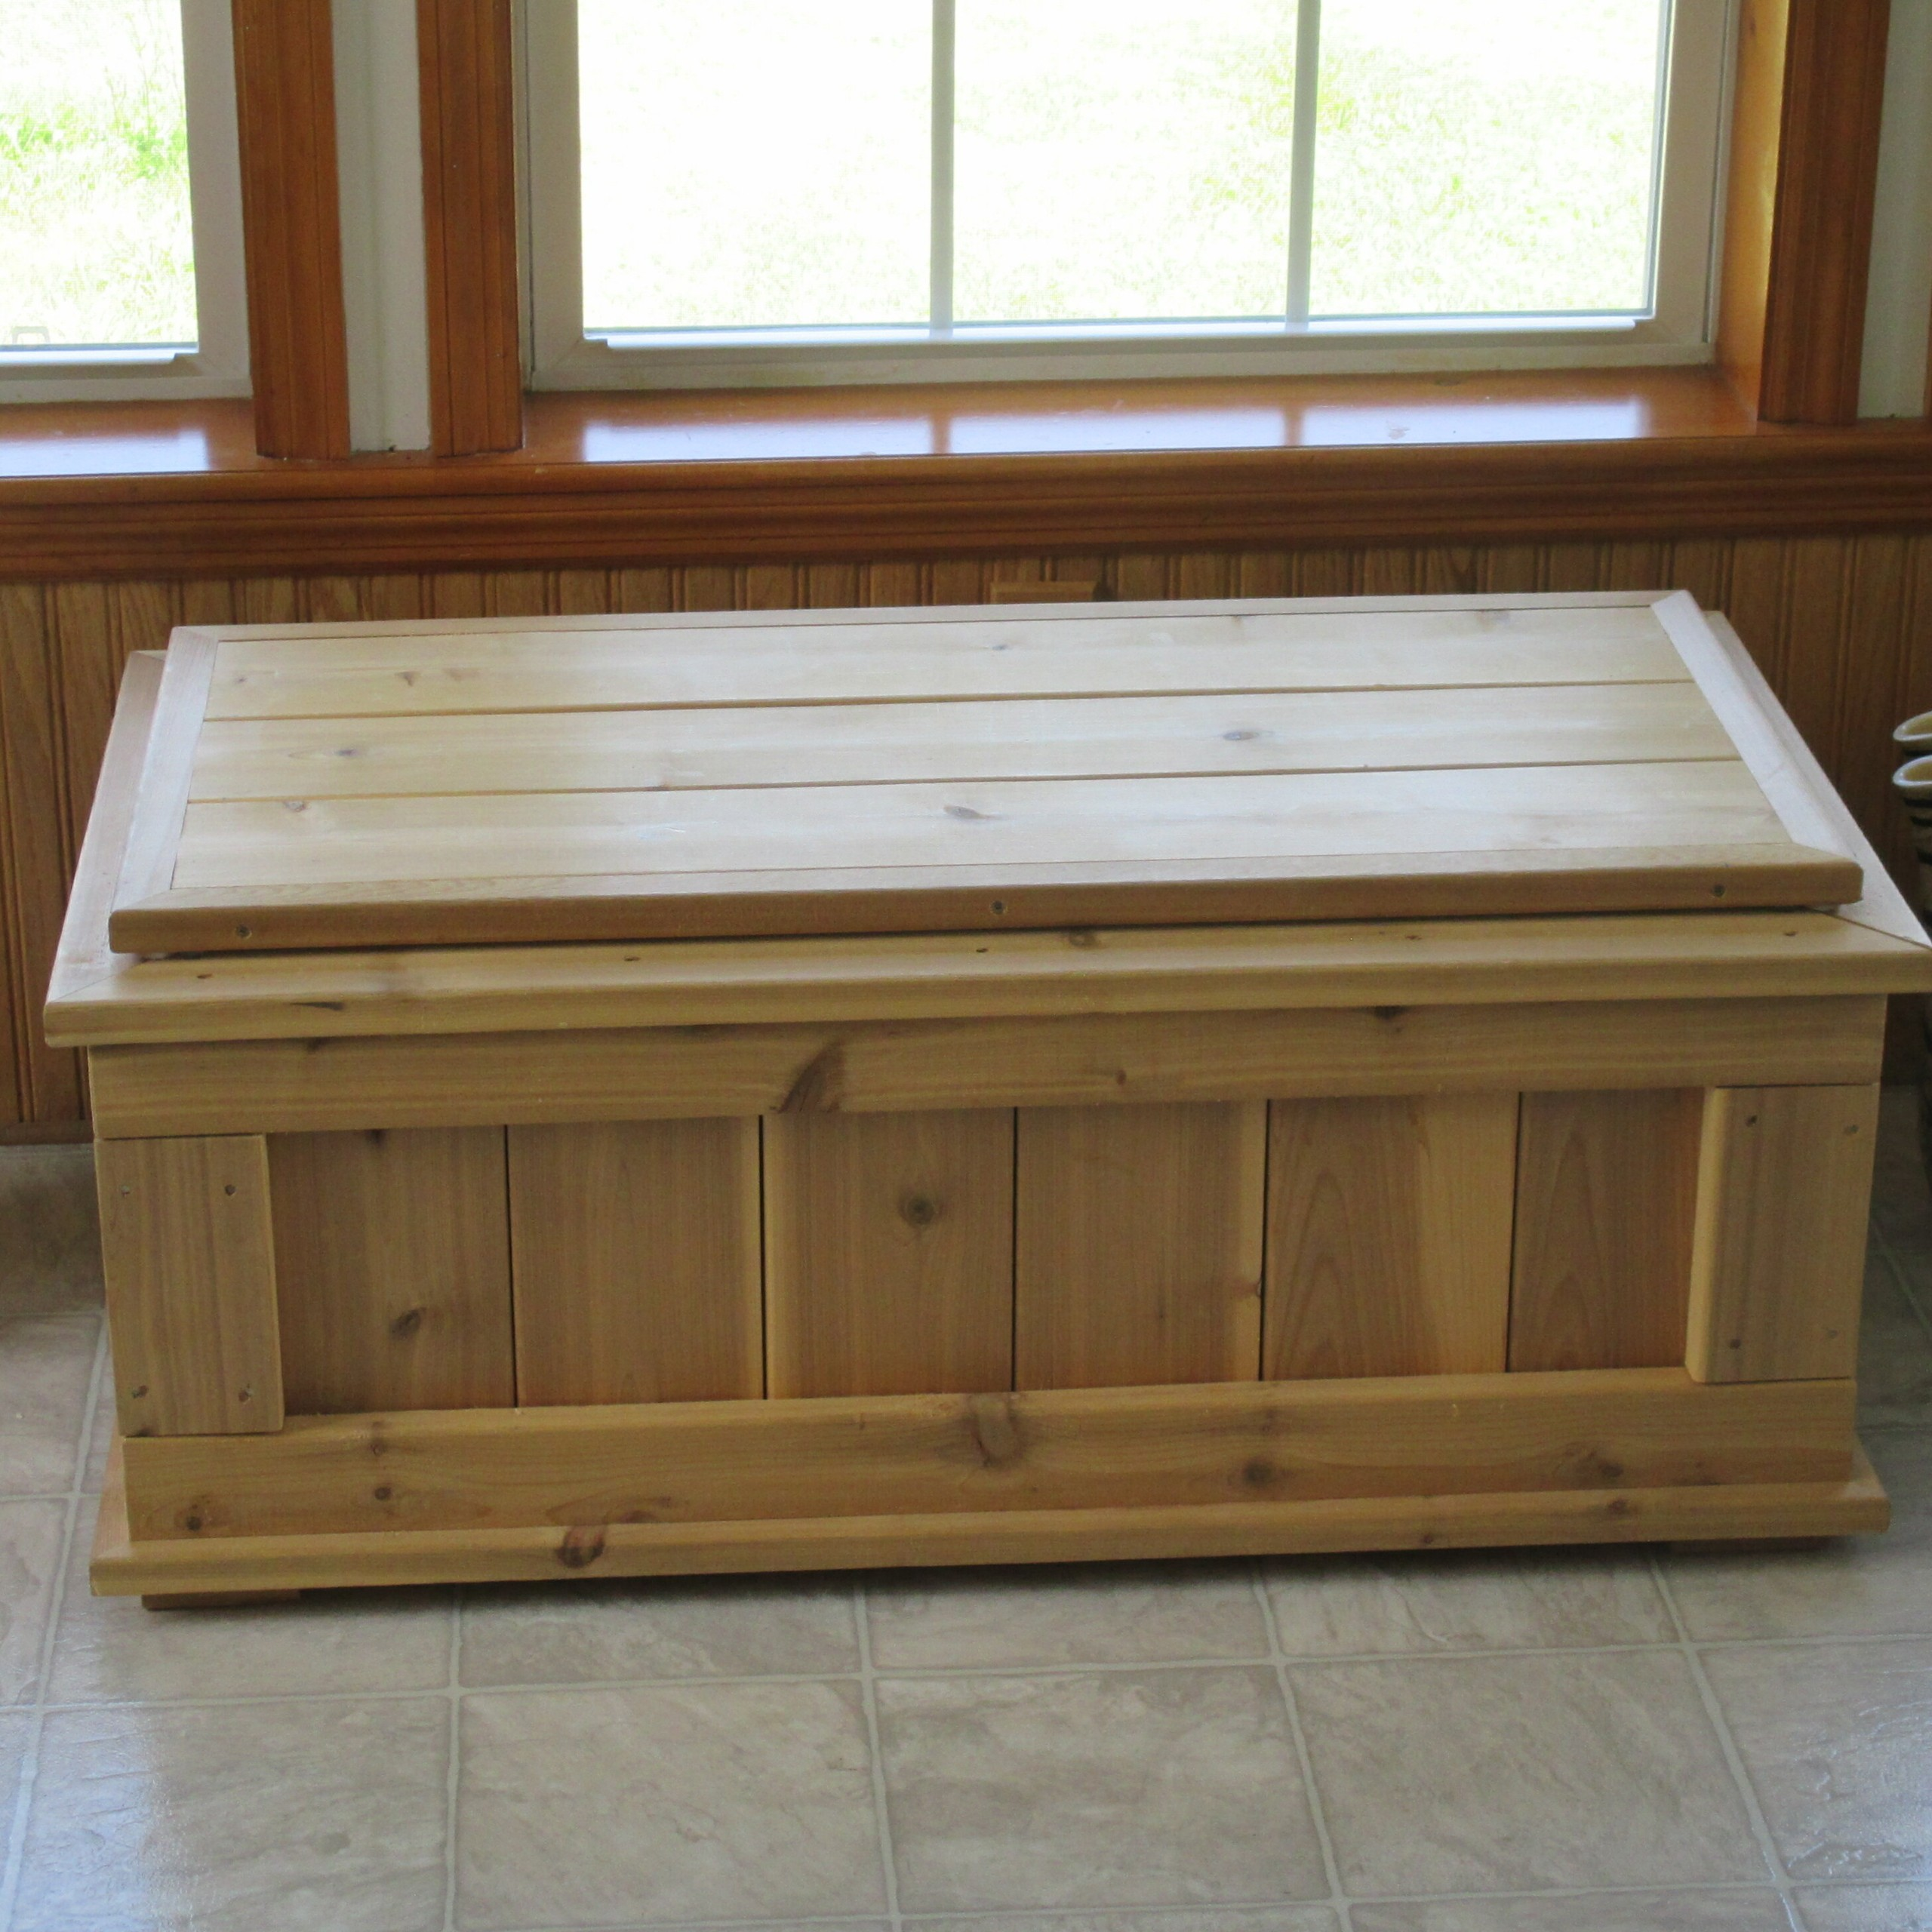 Large Storage Bench For Outdoor And Indoor Space Outdoor Waterproof Storage Bench - Ideas on Foter